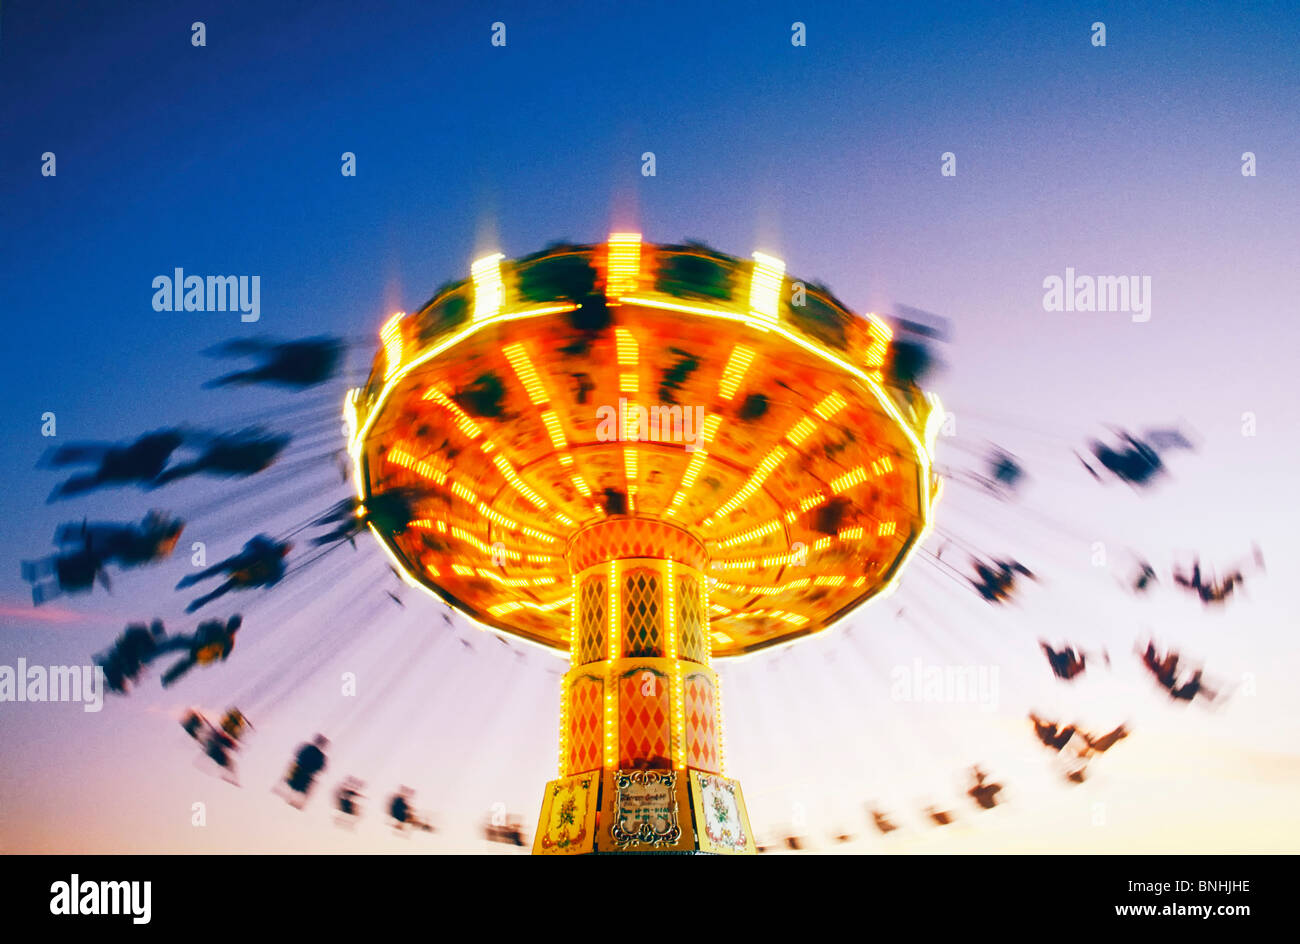 Sweden Stockholm Merry go round Action Activity Amusement Amusement park Amusement parks Carousel Chair Emotion Stock Photo